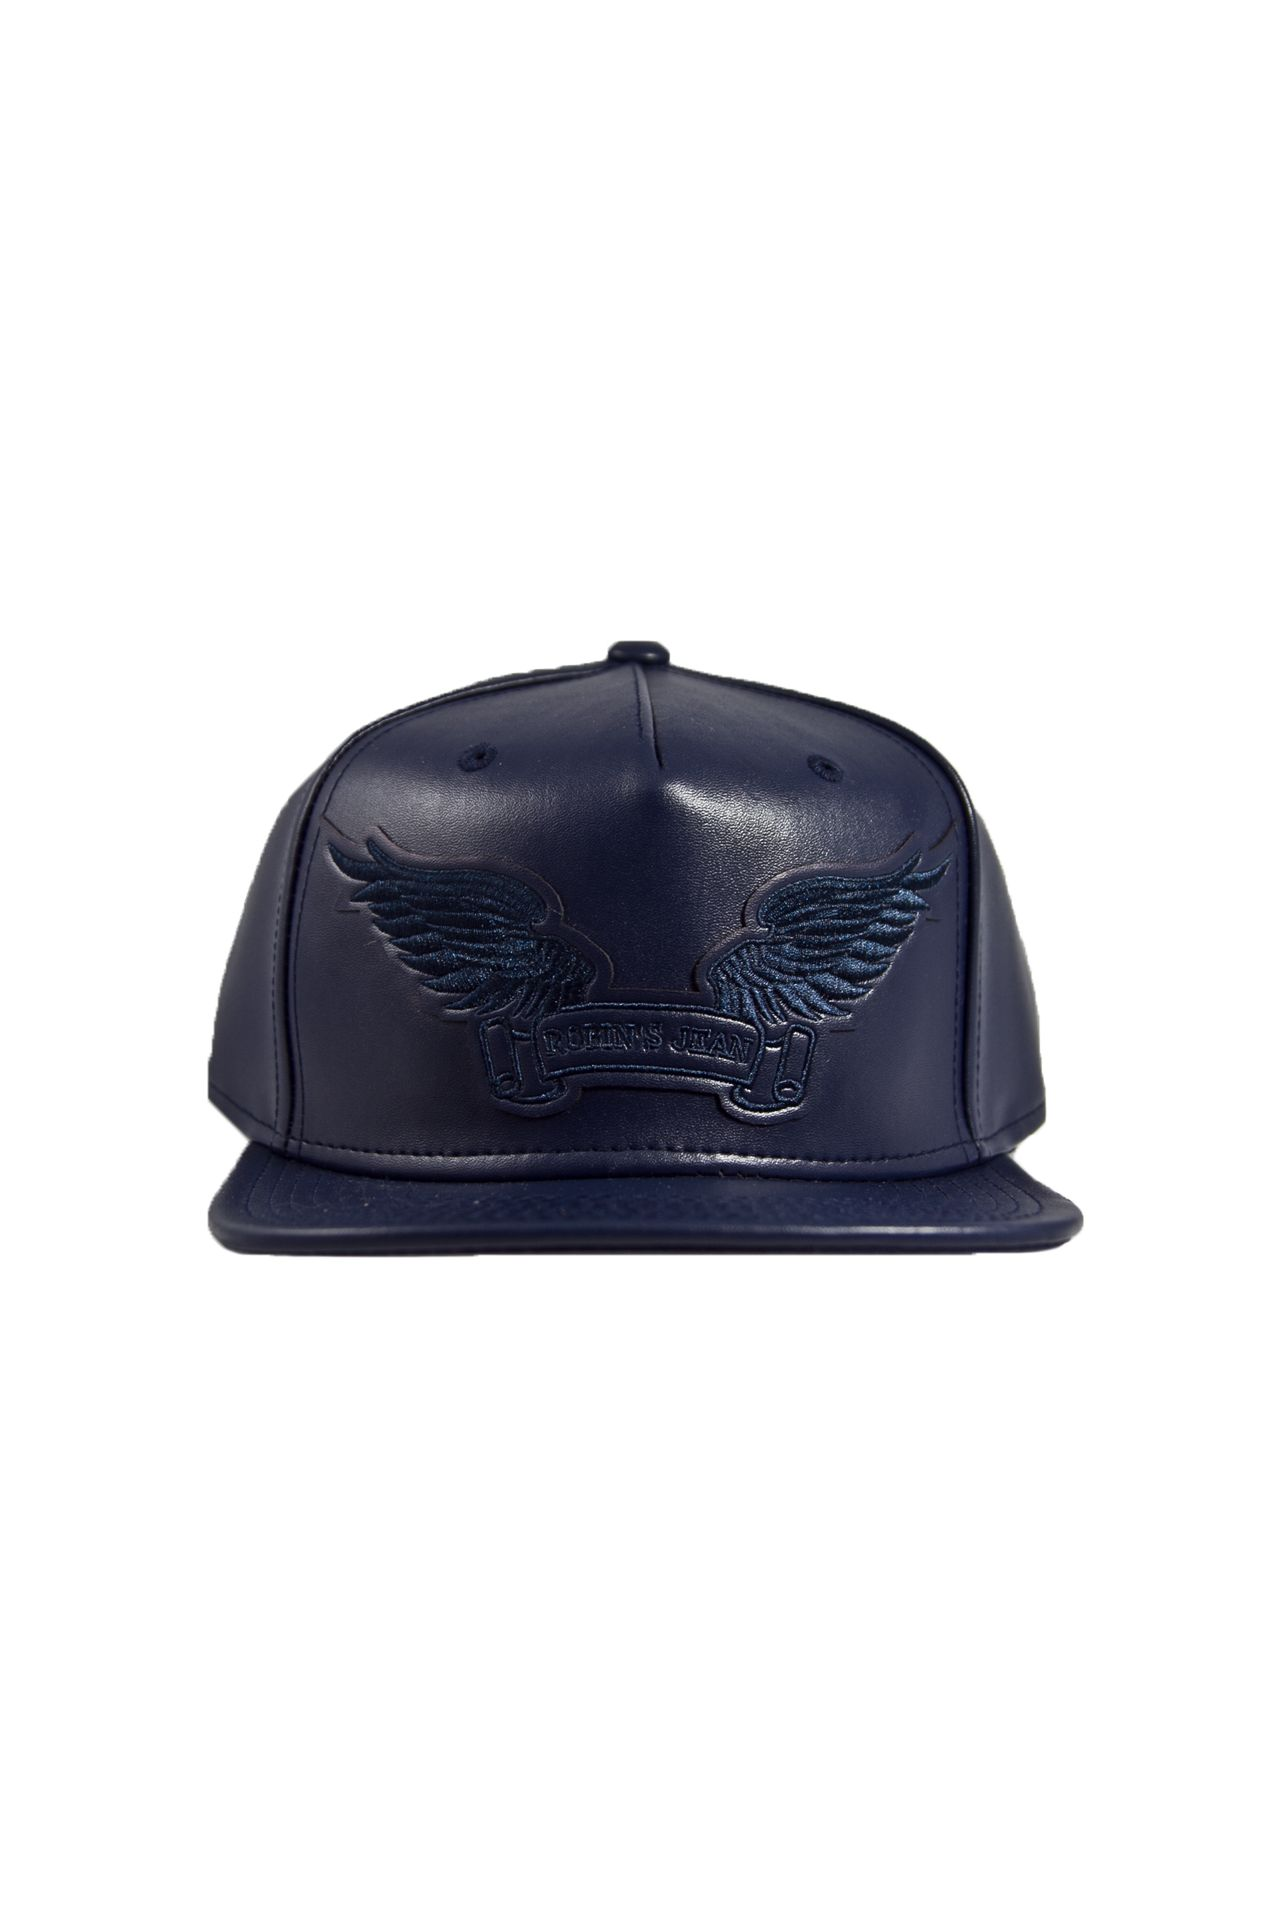 NAVY LEATHER LOOK CAP